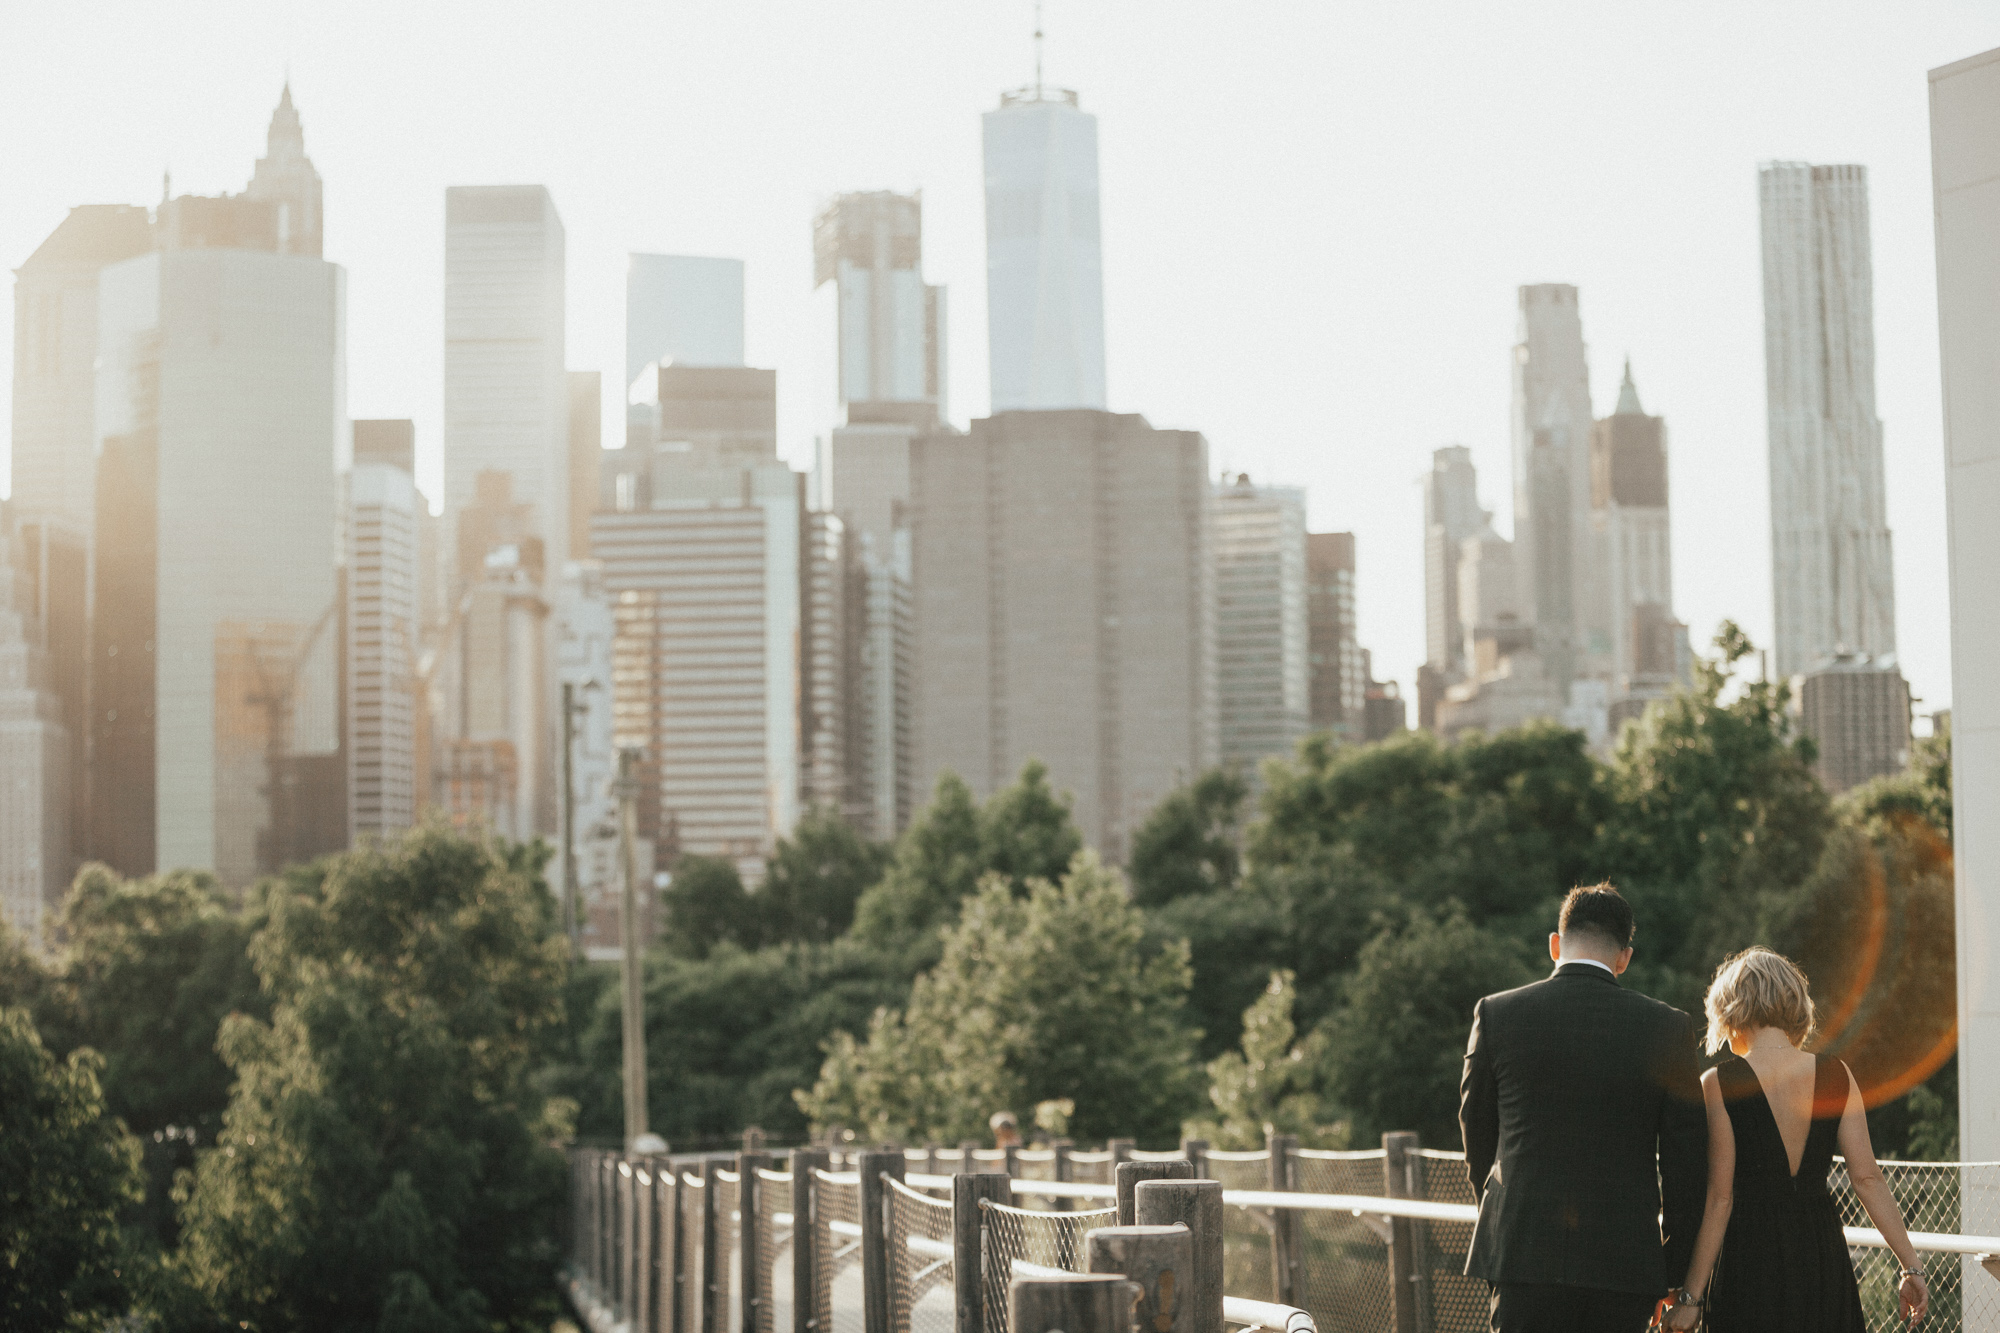 brooklyn_nyc_engagement_photography-44-of-83.jpg